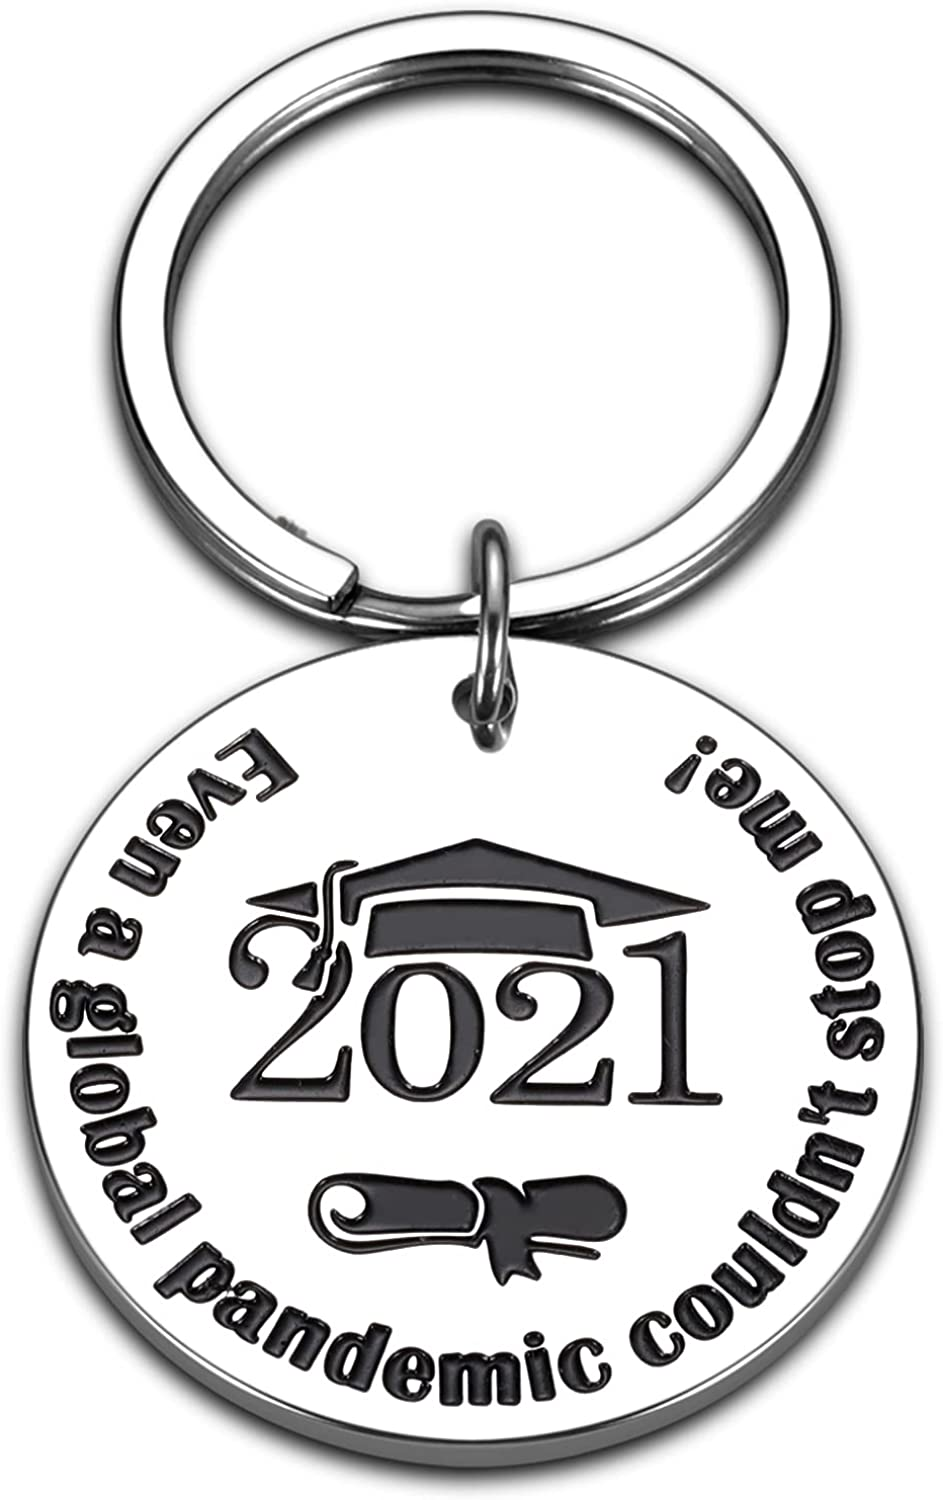 Graduation Keychain 2021 for Him Her Teens Inspirational Gifts for College Graduates Daughter Son from Teacher Father Mother Graduation Gift for Women Men BFF Christmas Birthday New Journey Keyring